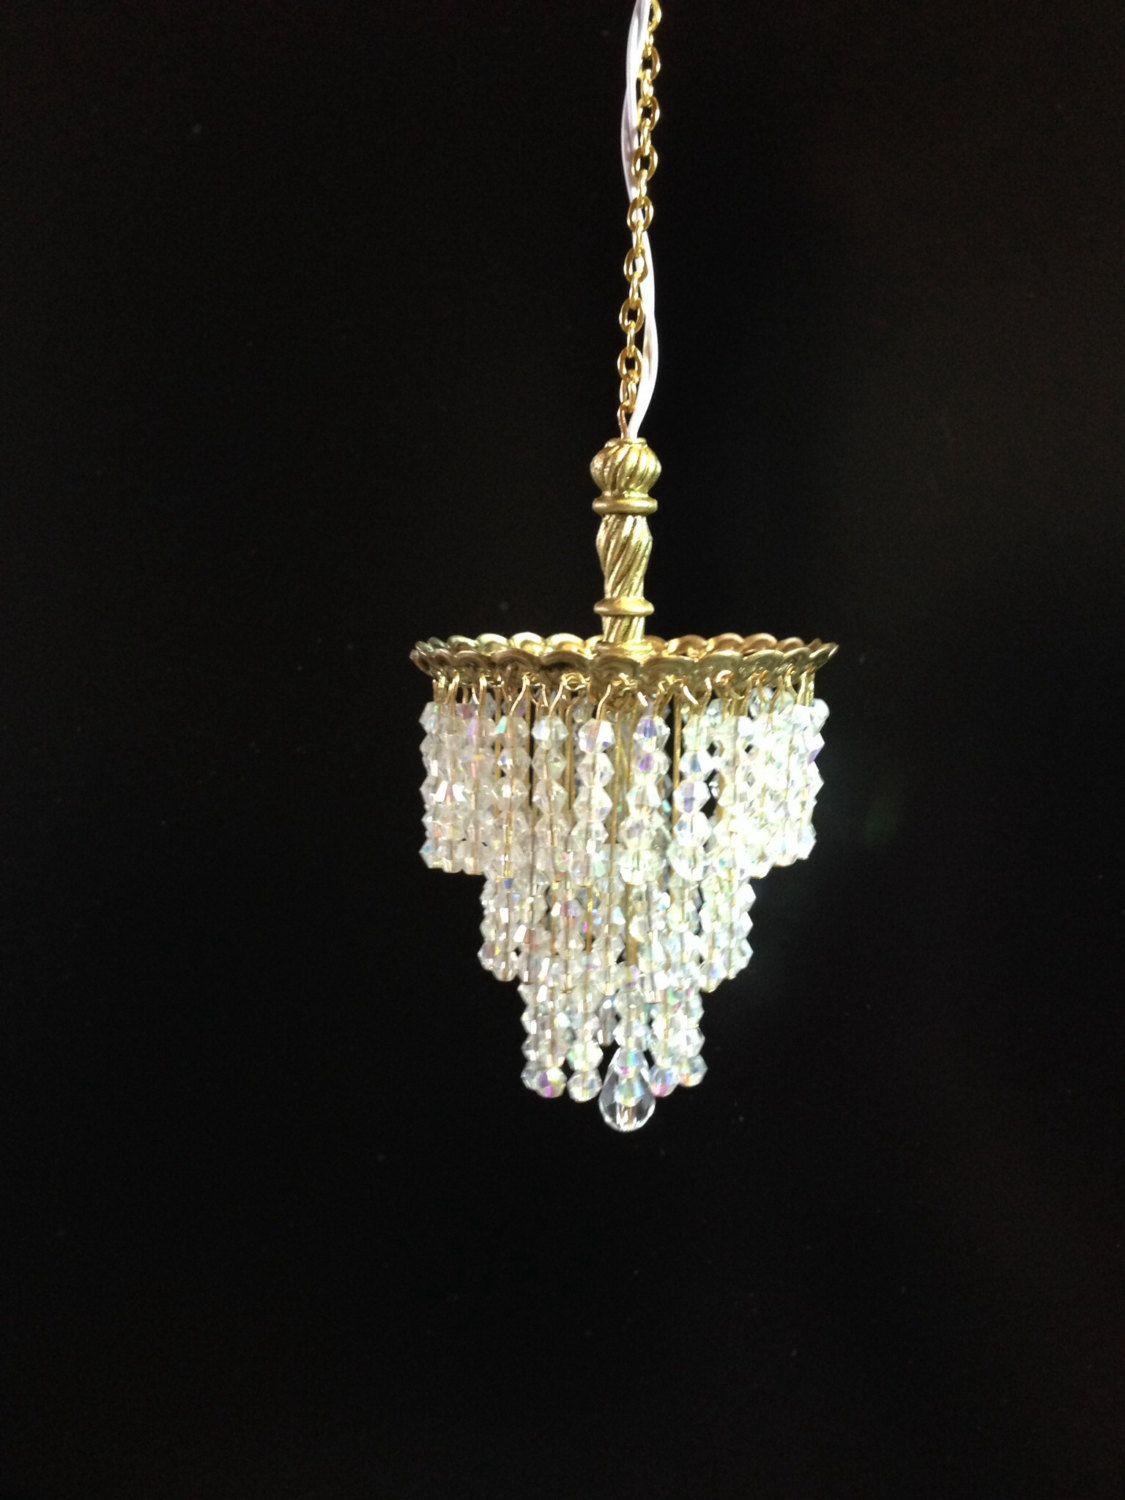 Artisan Made Dollhouse Miniature Chandelier Crystal Tiered Crystal Electric 12v 1 12 Wedding Cake By Coo Dollhouse Miniatures Doll House Dollhouse Chandelier